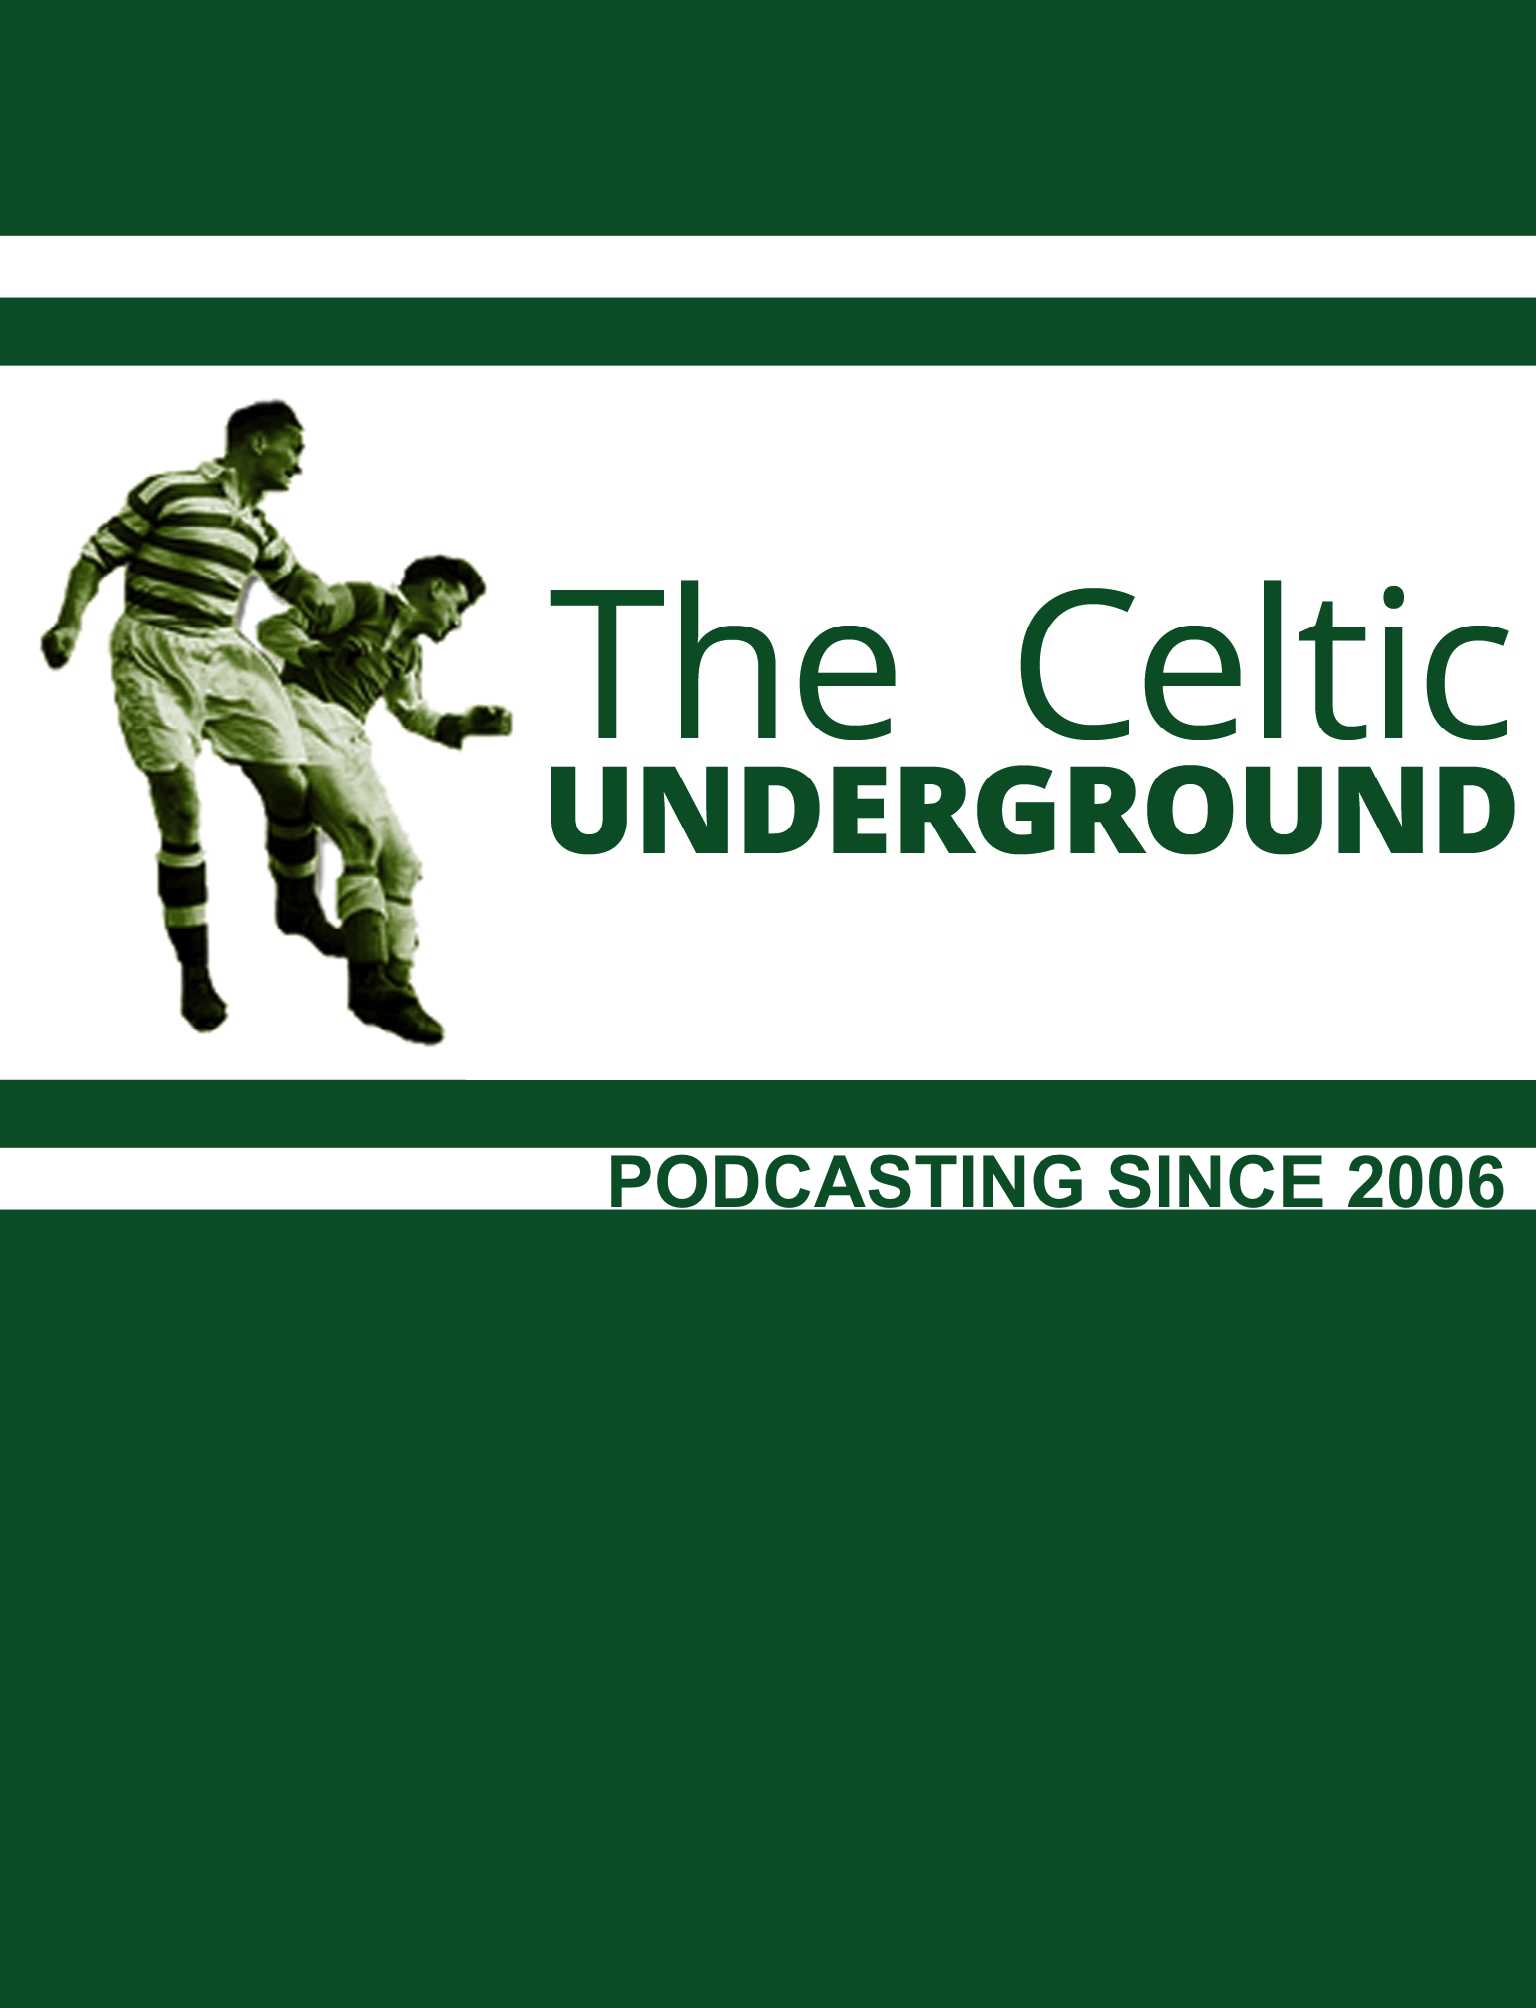 Podcast Xtra – 10 Goal Hibs Thriller